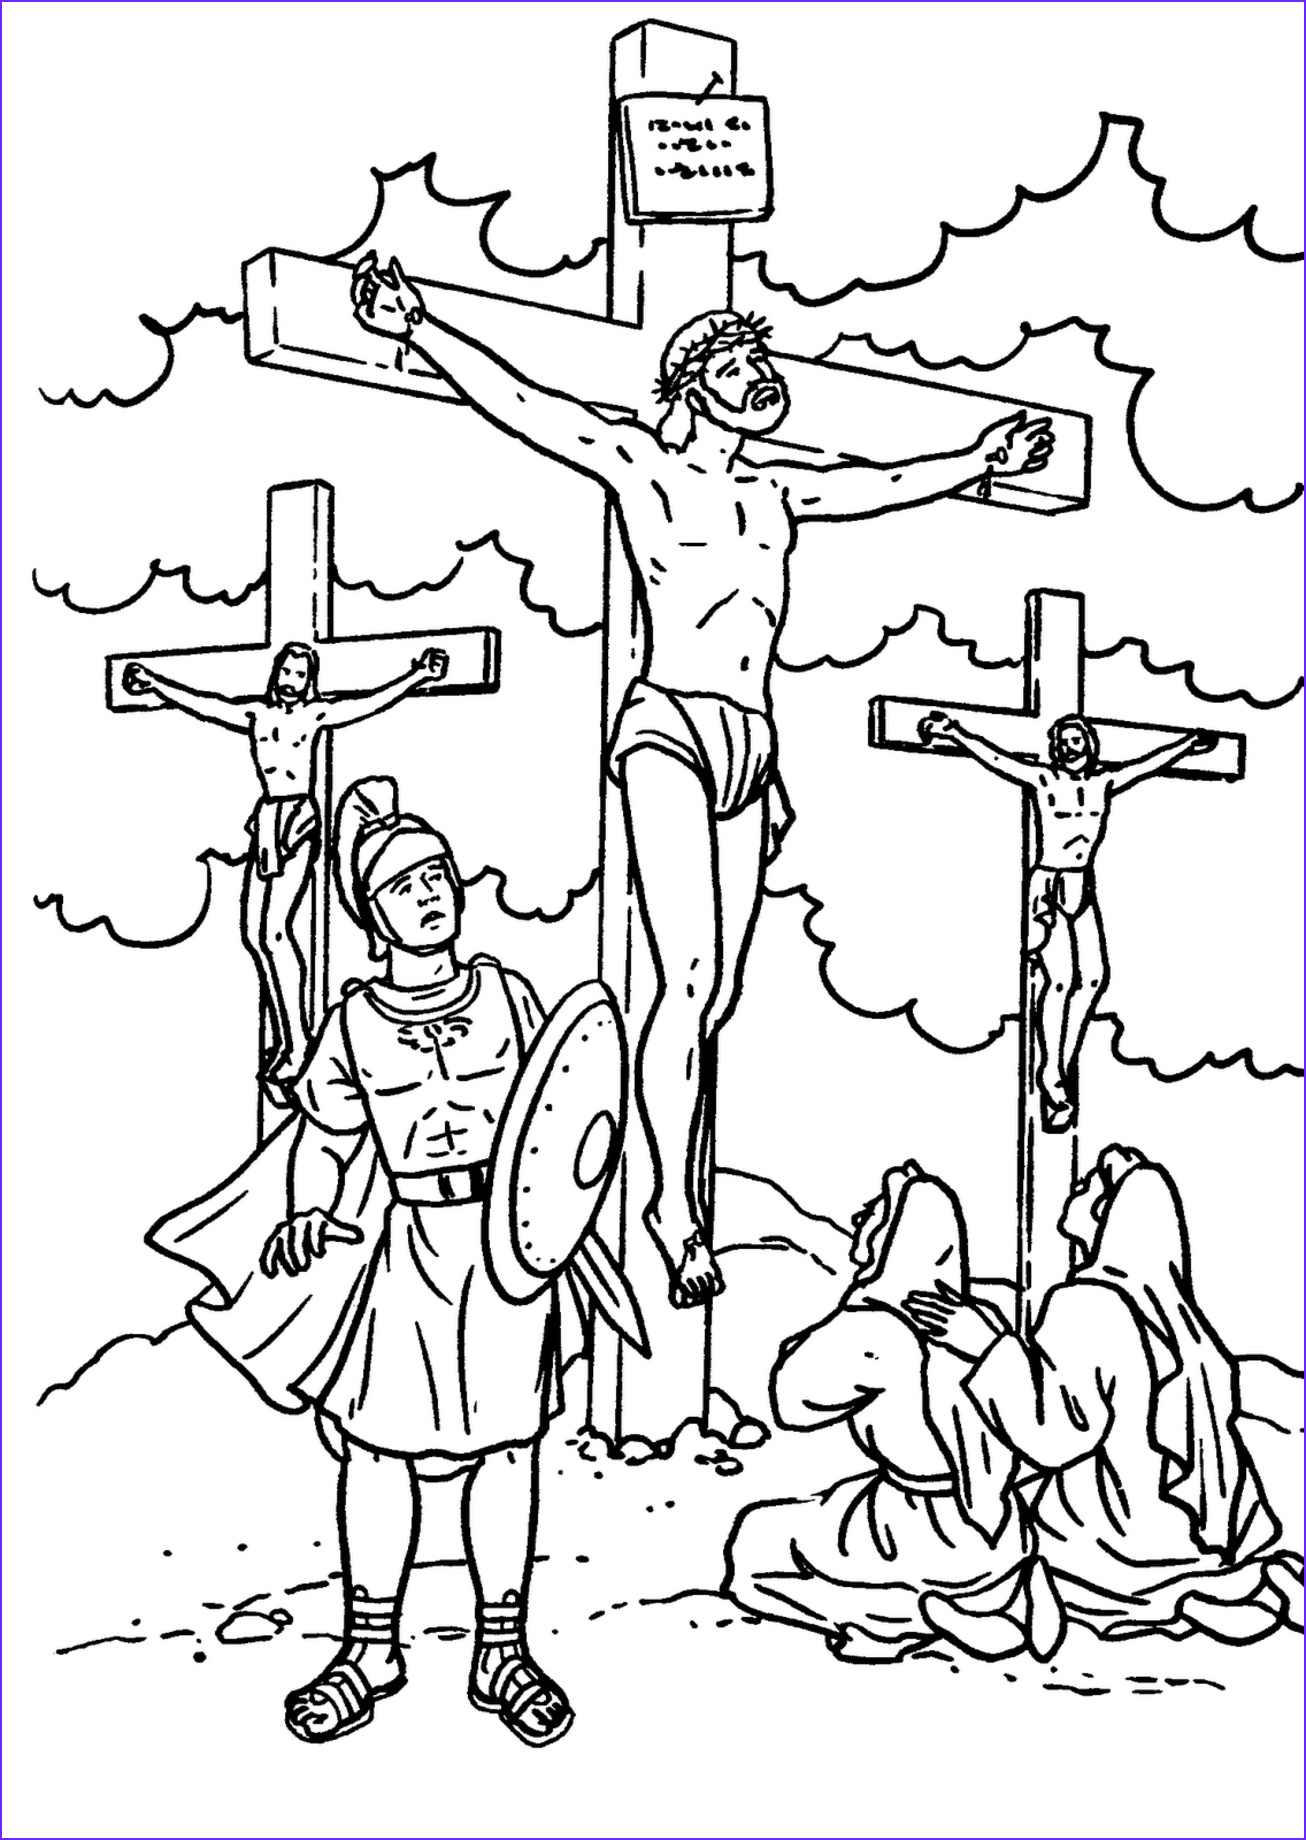 jesus d on the cross coloring page